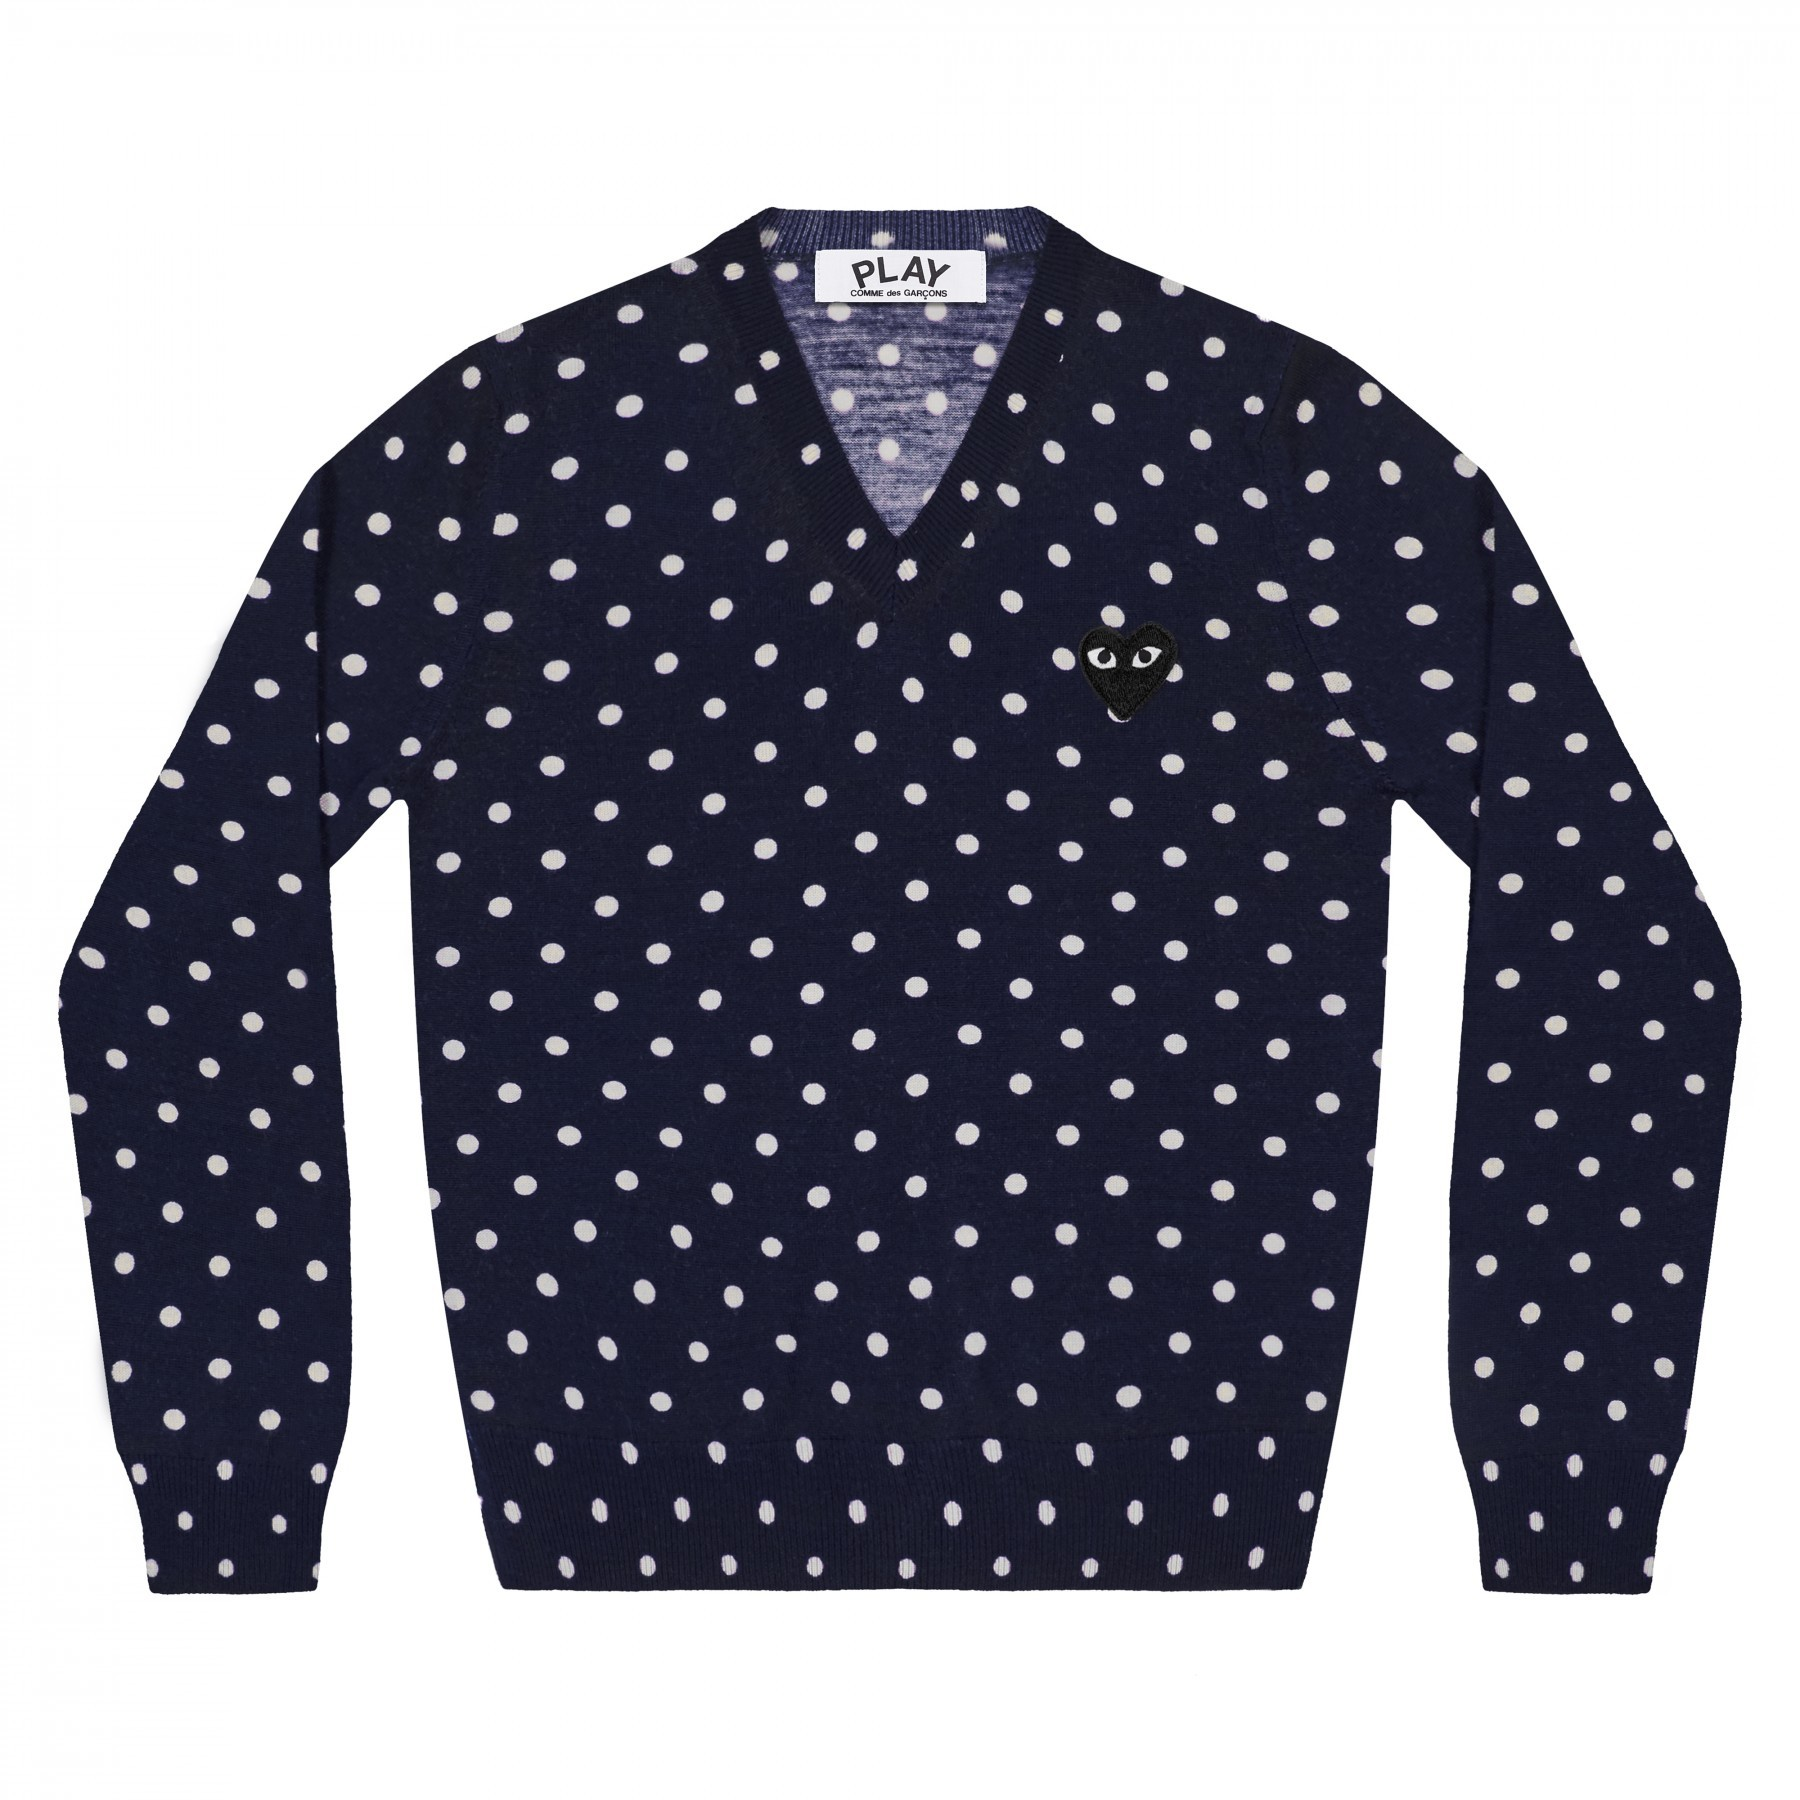 COMME DES GARÇONS PLAY - COMME DES GARÇONS PLAY POLKA DOT KNITTED NAVY SWEATER